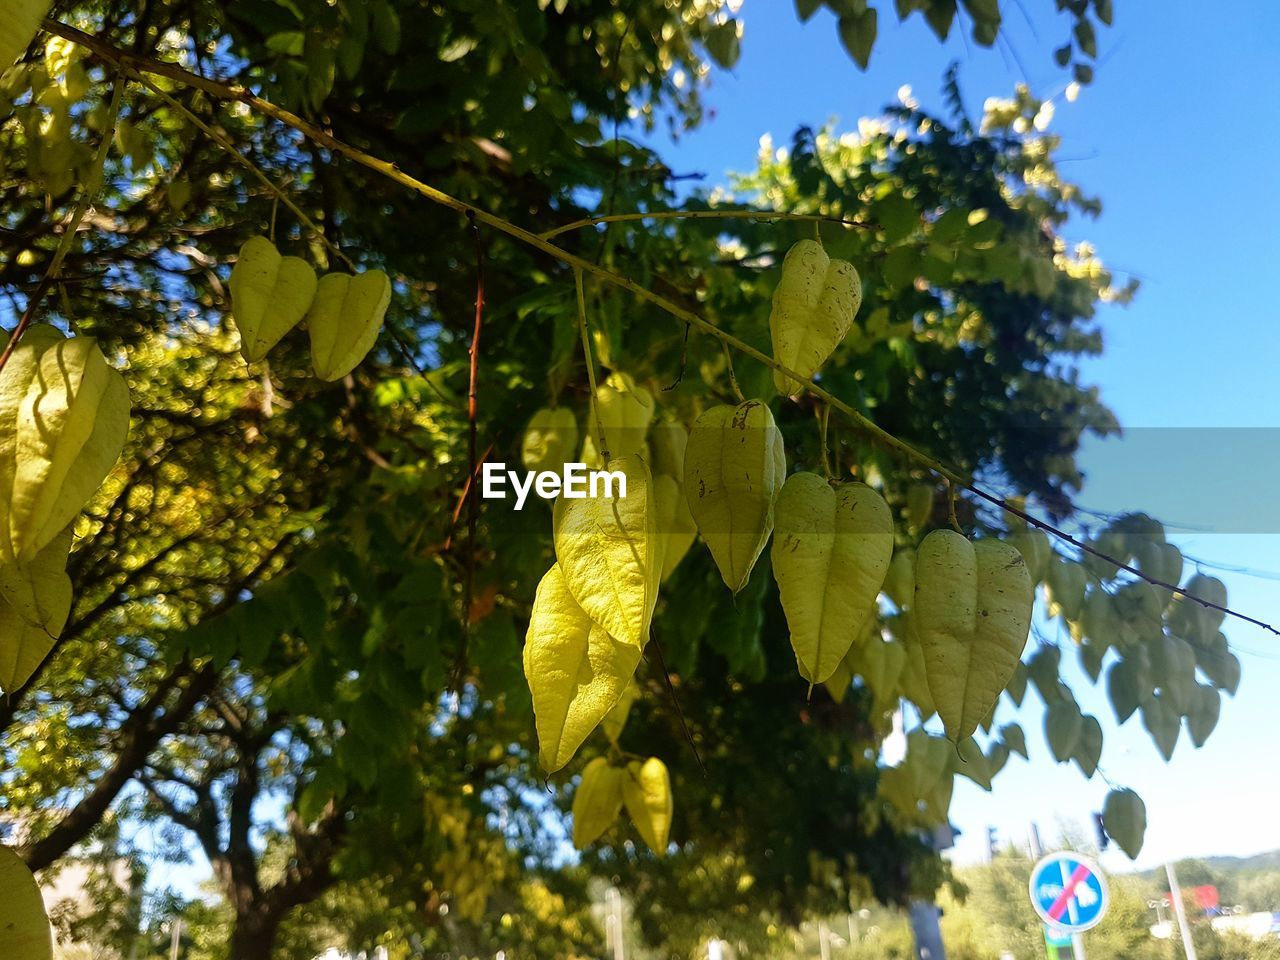 plant, tree, leaf, plant part, low angle view, growth, nature, focus on foreground, no people, day, fruit, hanging, healthy eating, sky, close-up, food, food and drink, sunlight, outdoors, freshness, ripe